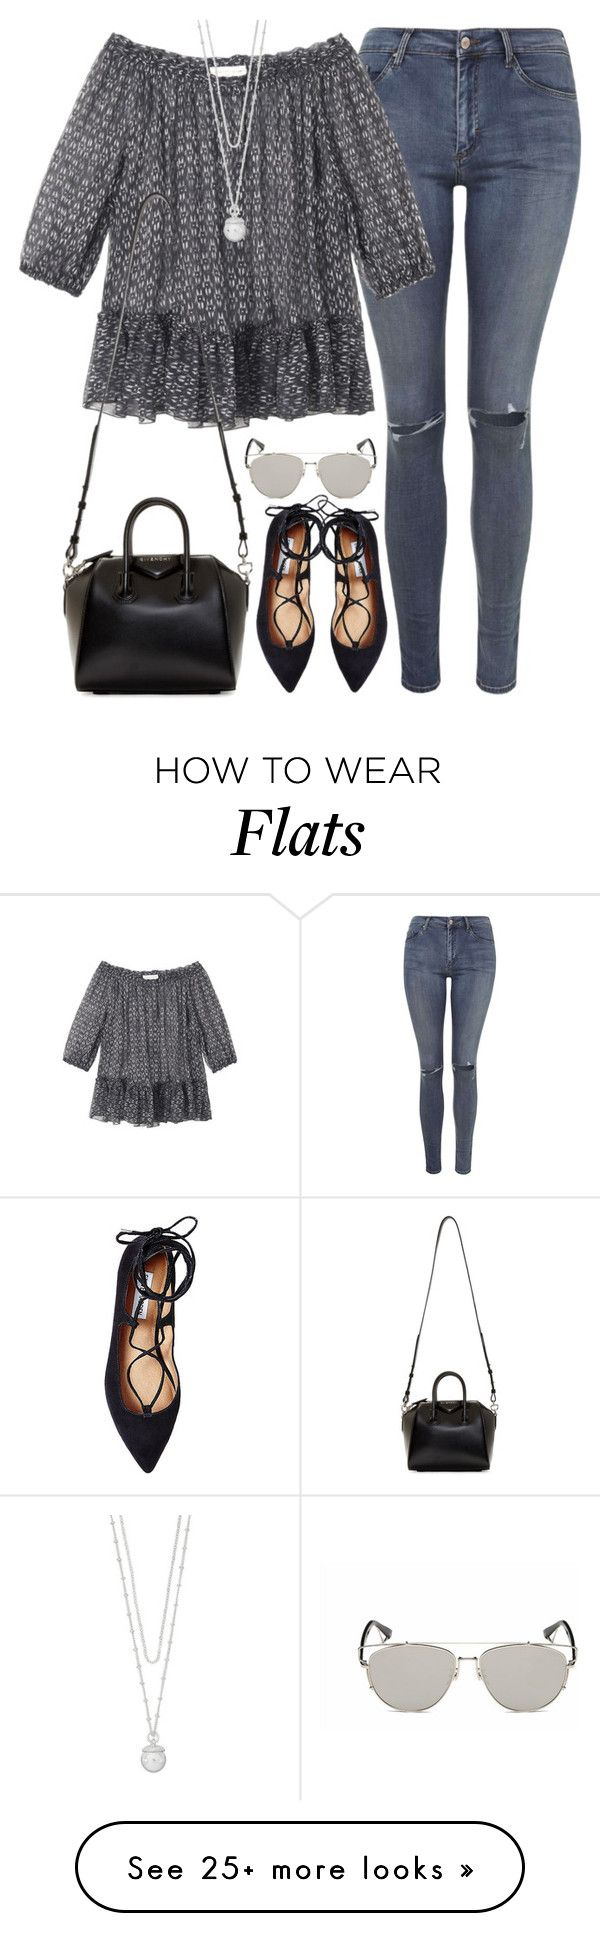 """""""Untitled#3873"""" by fashionnfacts on Polyvore featuring Topshop, Rebecca Taylor, Steve Madden, Givenchy, Retrò and The Limited"""